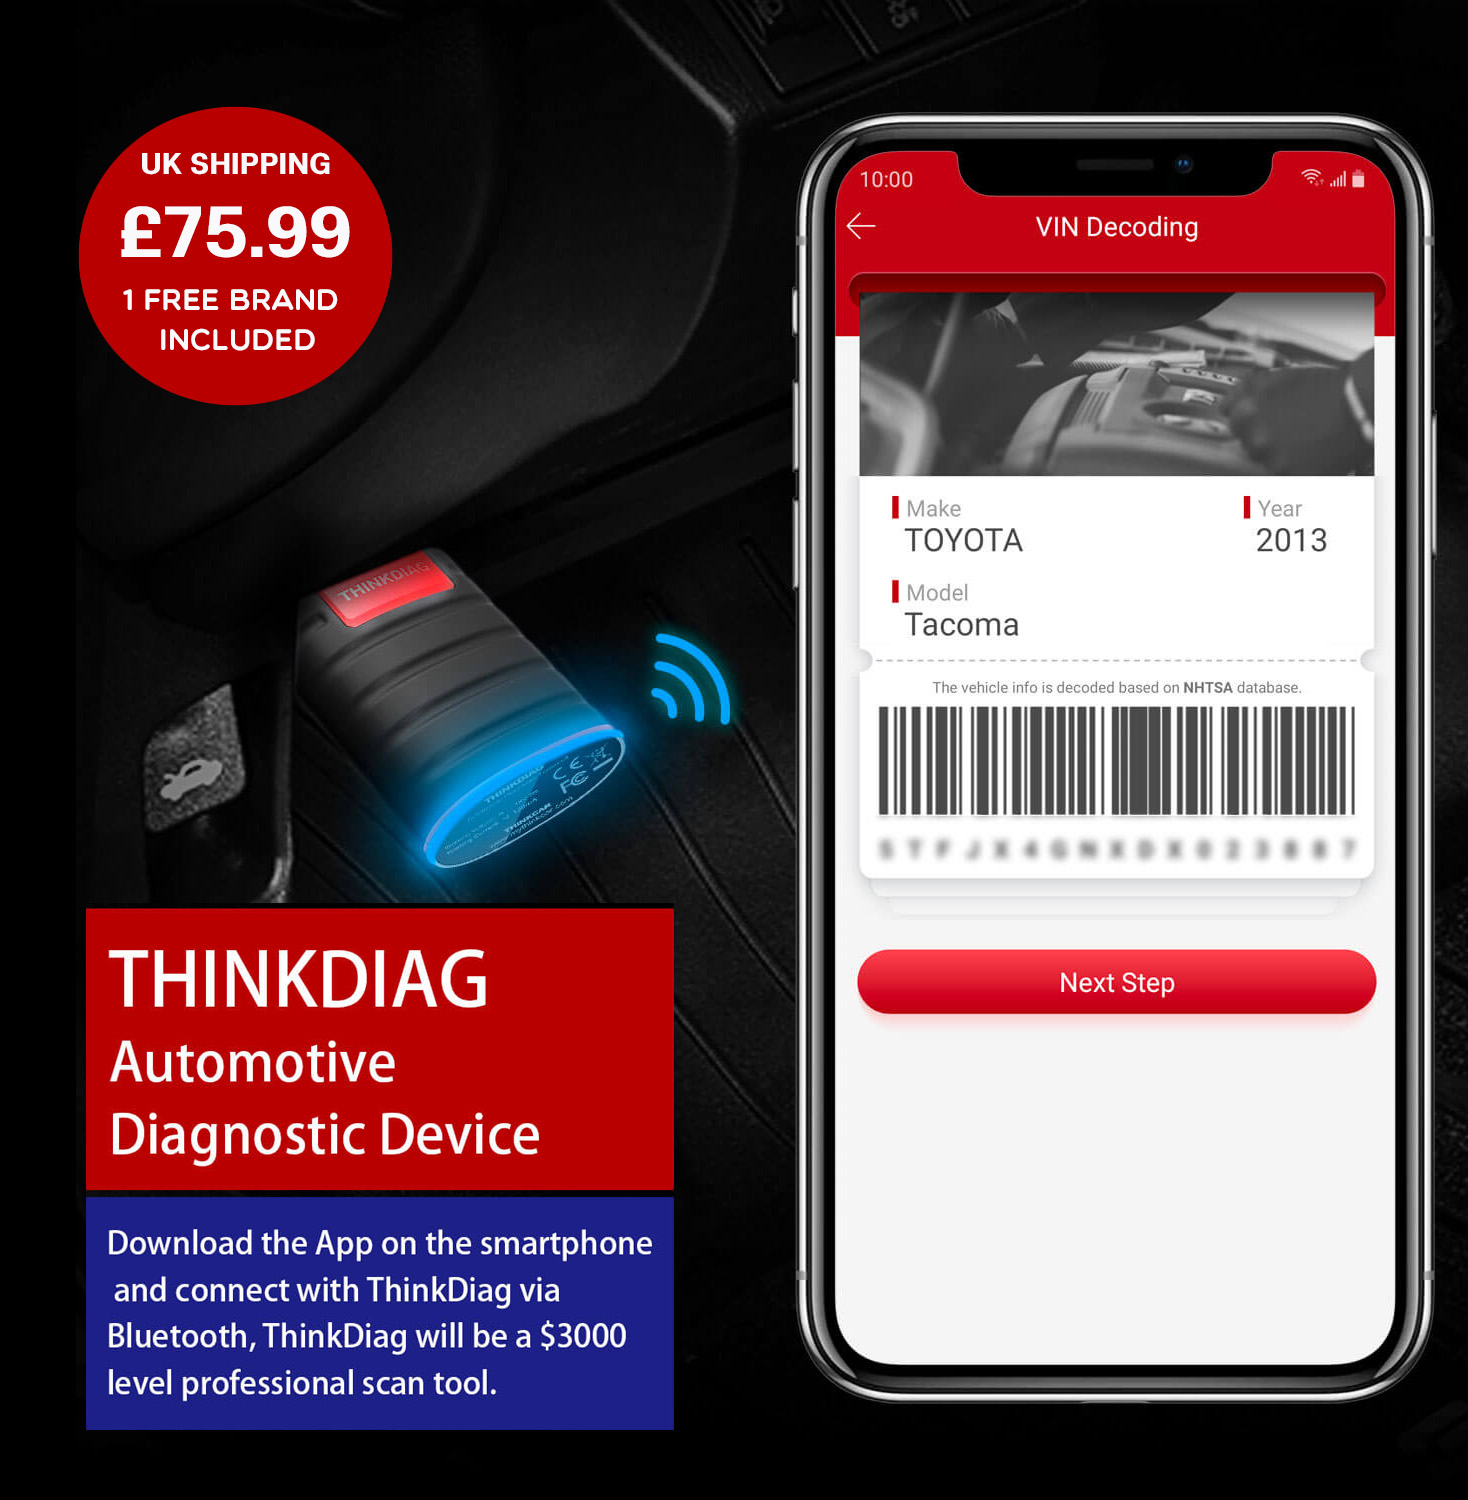 THINKDIAG Advanced Automotive Diagnostic Device (The Next Generation In Diagnostics). Download The App On A Android or IOS Tablet Or Smartphone then Connect Via Bluetooth To ThinkDiag.Thinkdiag will become a profeshional OEM level like tool that will not disapoint and could save you alot of money with the sometimes high prices of main dealers..